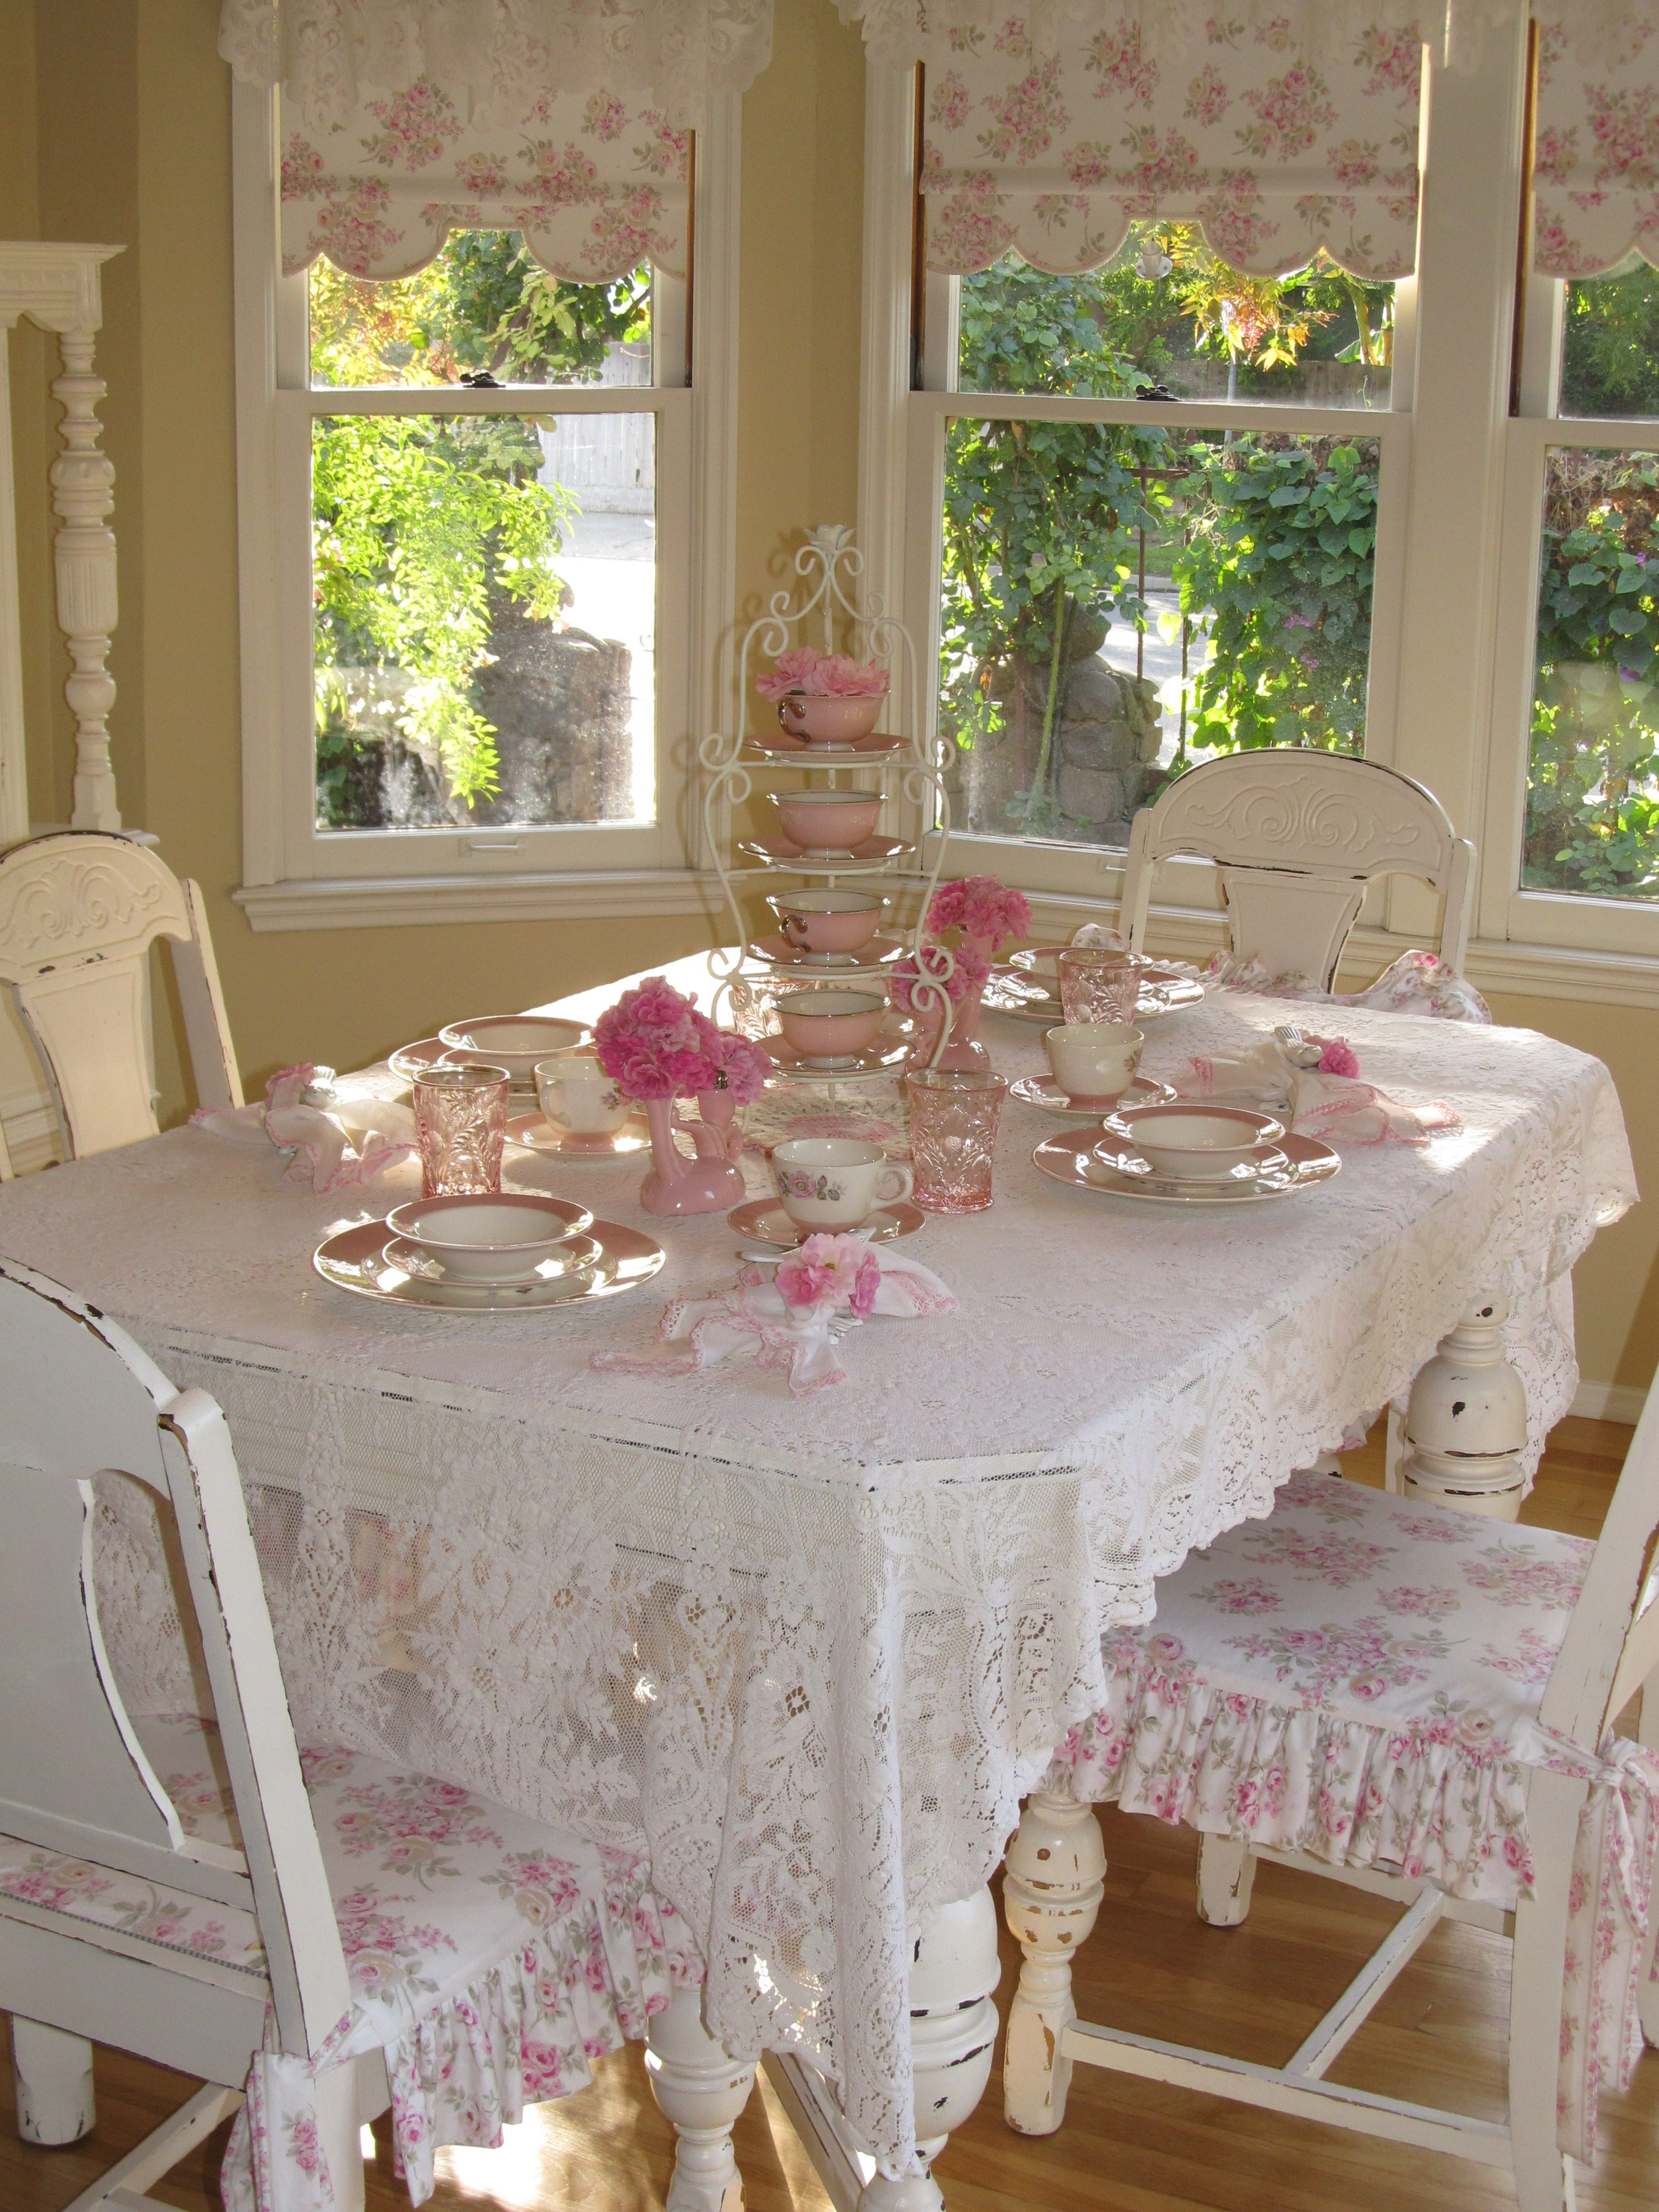 Afternoon Tea In A Beautiful Shabby Chic Dining Room